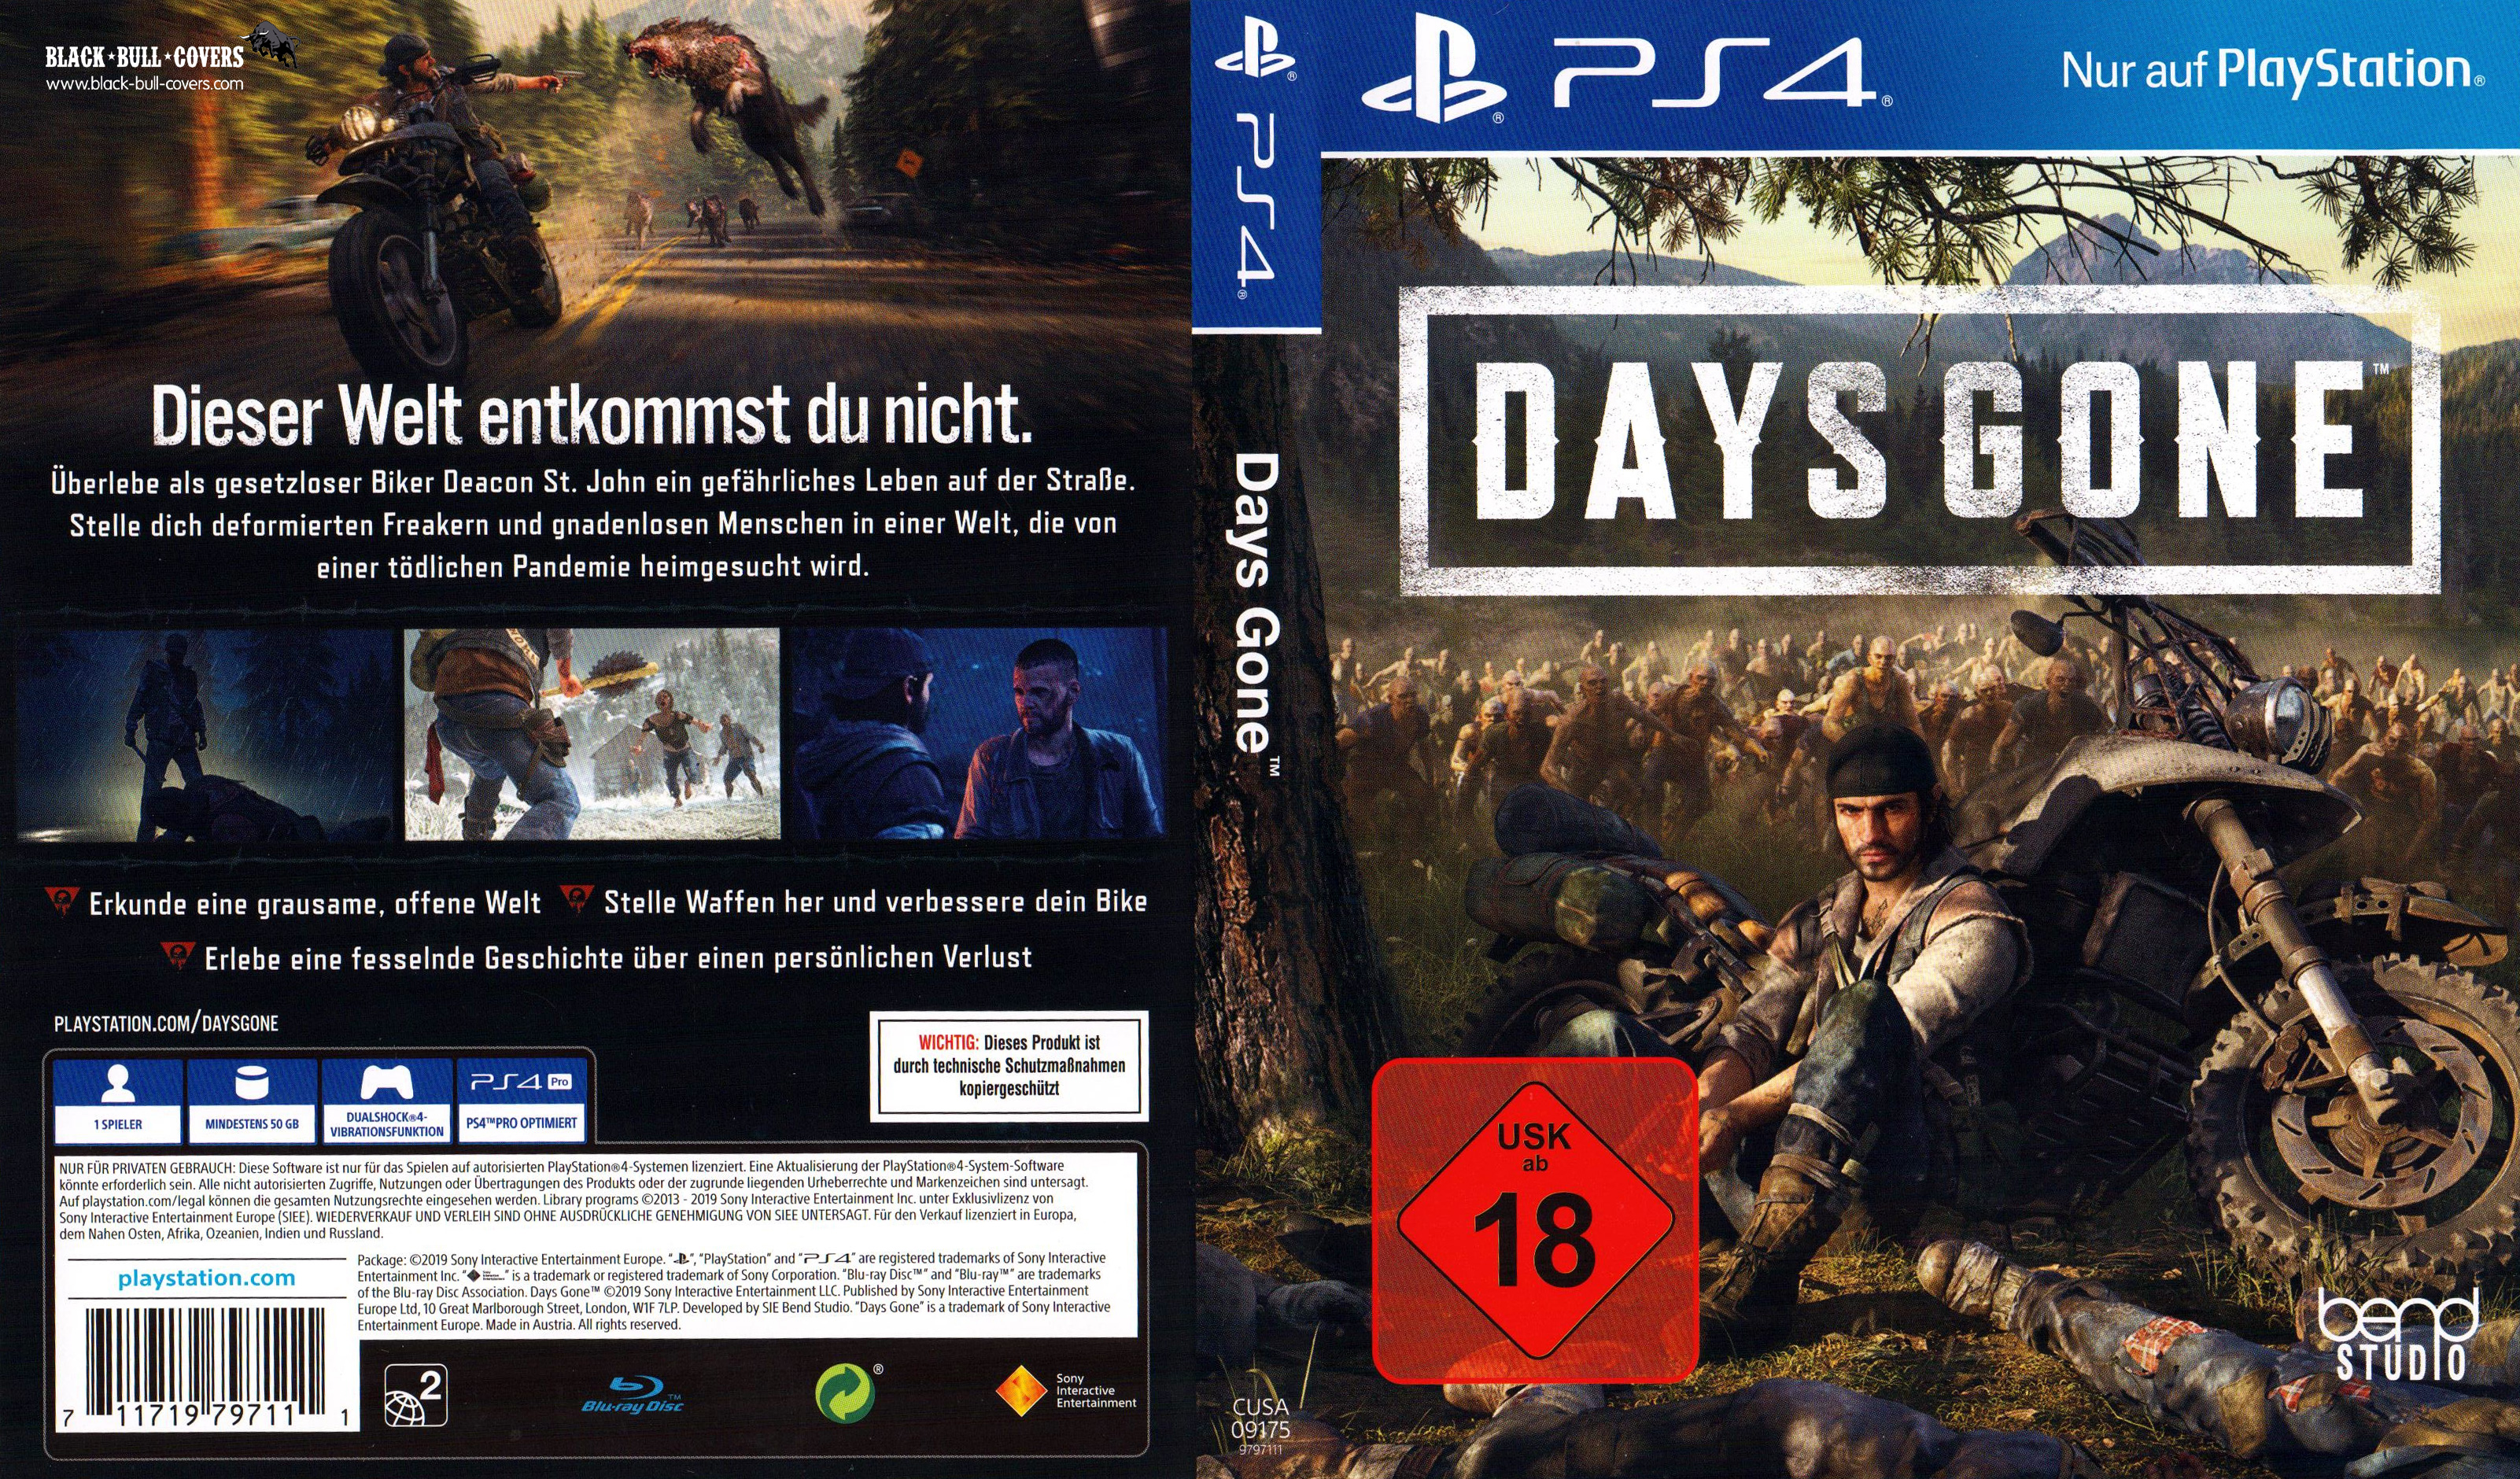 image regarding Printable Game Covers referred to as Playstation 4 Addresses - This is for the Avid gamers